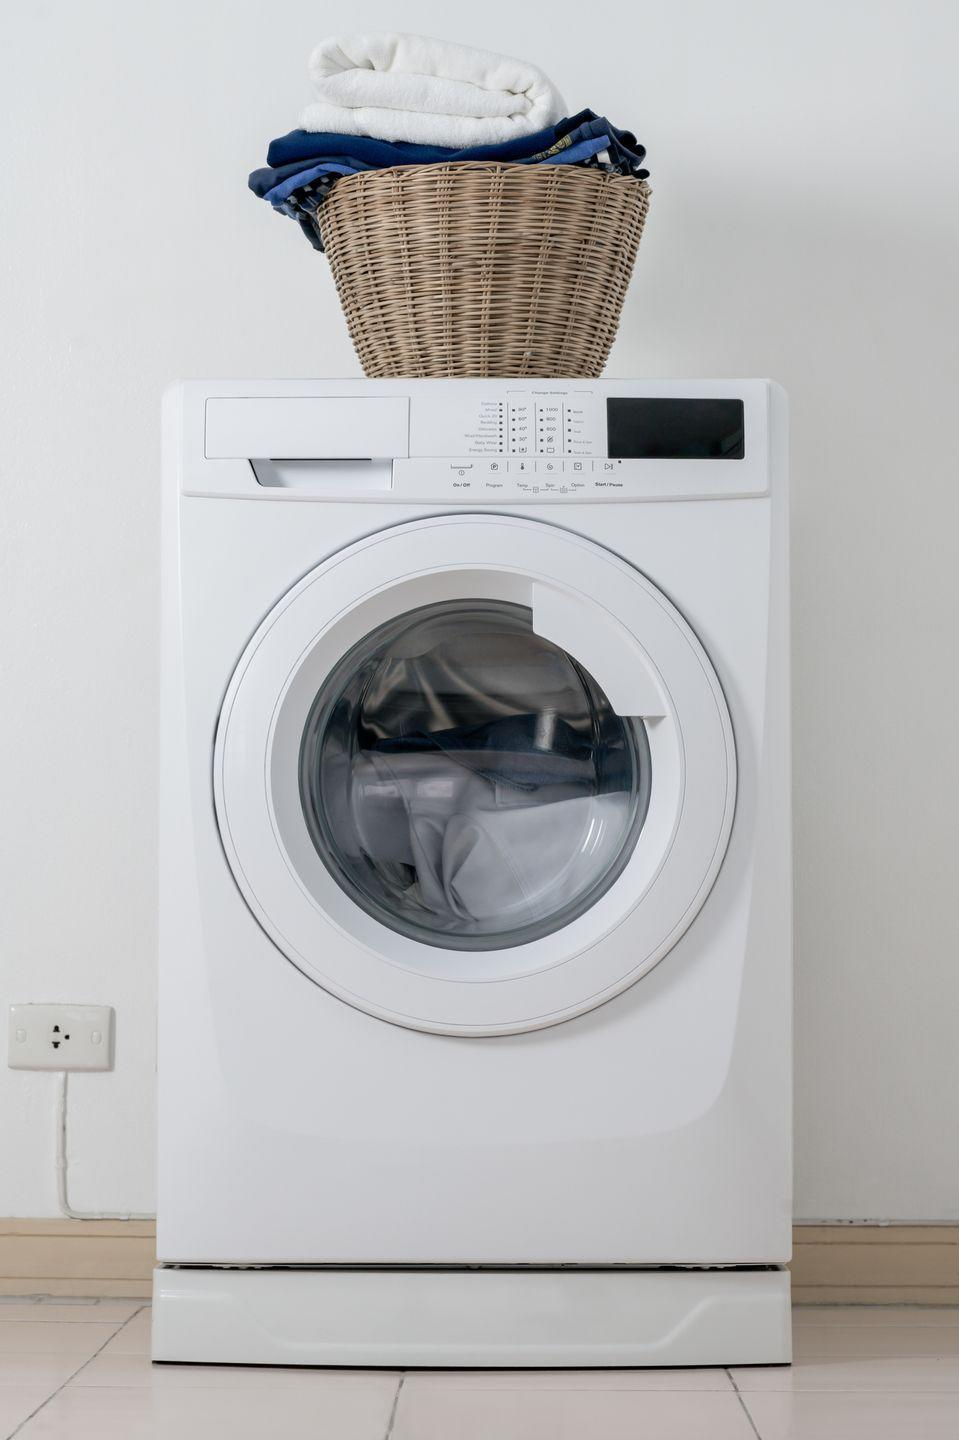 "<p>To clean out the dirt, mold, and other grimy residue that can build up in your washer, <em>Better Homes & Gardens </em>recommends that you <a href=""https://www.bhg.com/homekeeping/laundry-linens/tips-checklists/how-to-clean-washing-machine/"" rel=""nofollow noopener"" target=""_blank"" data-ylk=""slk:run a hot cycle with vinegar"" class=""link rapid-noclick-resp"">run a hot cycle with vinegar</a>. First, run an empty, regular cycle on hot, using two cups of white vinegar instead of detergent. Then, mix about a quarter cup of vinegar with a quart of warm water and use this mixture — plus a sponge and dedicated toothbrush — to clean the inside of the machine.</p><p>Finally, run one more empty, regular cycle on hot, without detergent or vinegar. If you'd like, you can add half a cup of baking soda to the drum to help clear away buildup loosened from the first cycle. </p>"